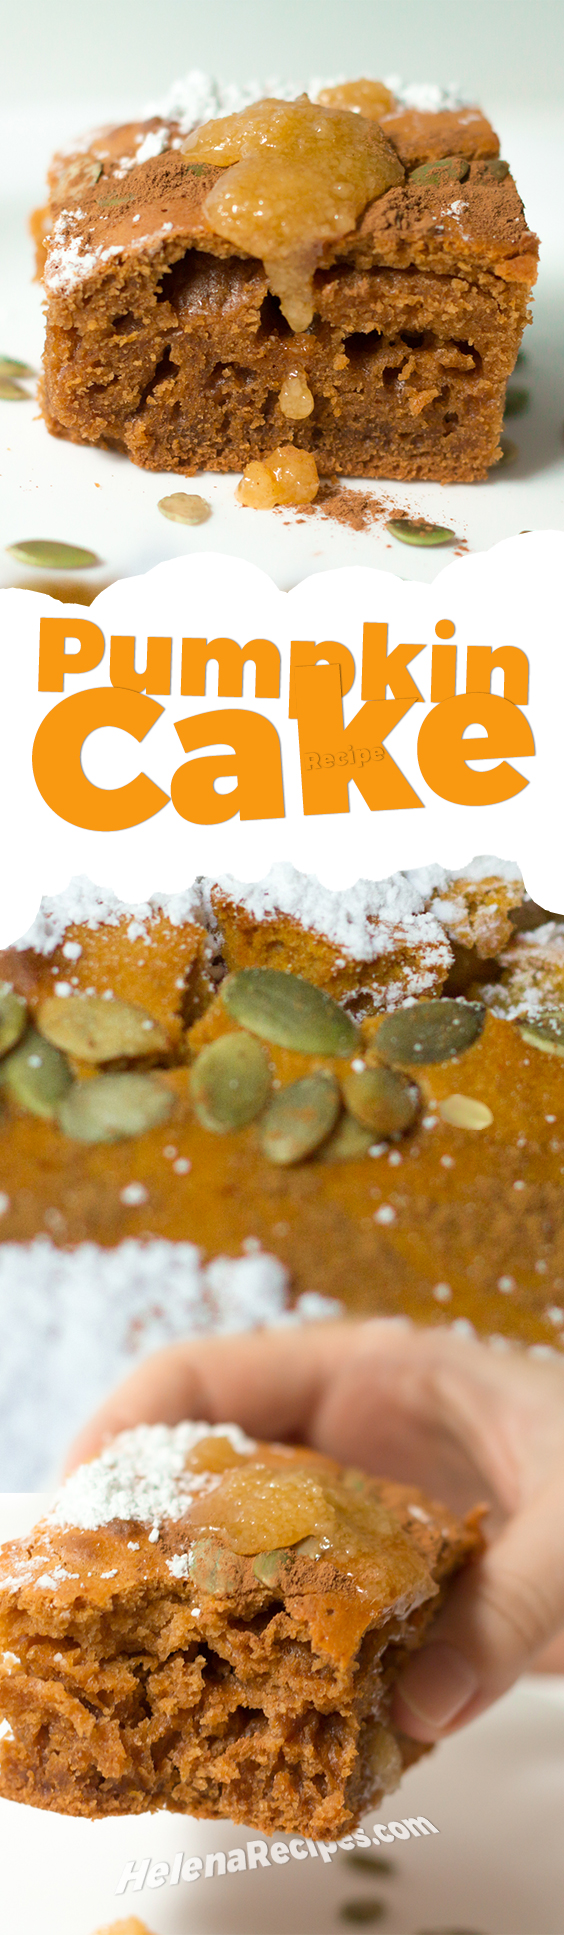 Pumpkin-Cake-Recipe-Pinterest-Image